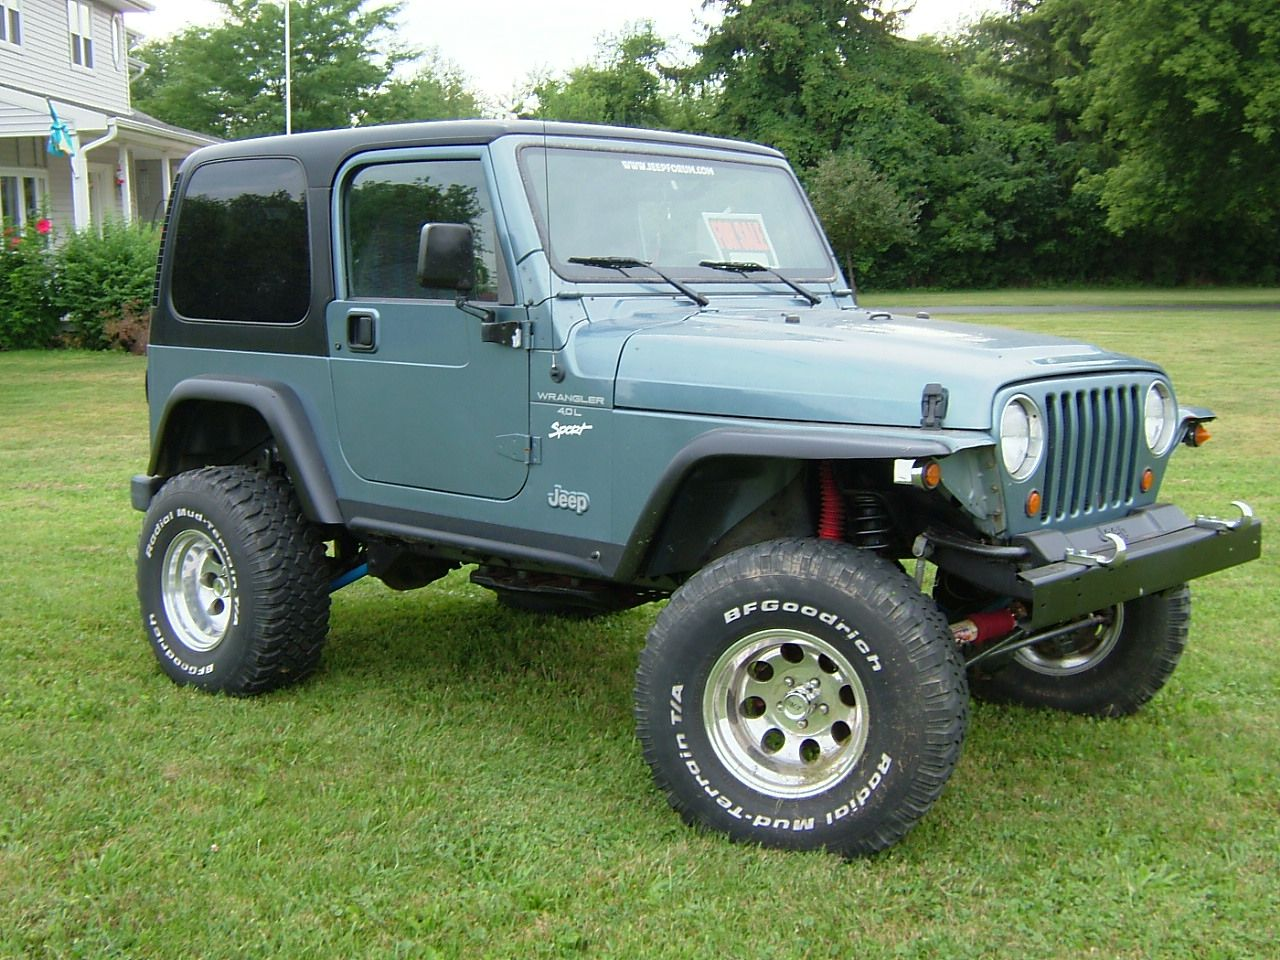 Baby Blue Jeep And Bernese Mountain Dog All I Need In Life 1998 Jeep Wrangler Jeep Wrangler Wheels Jeep Wrangler 1995